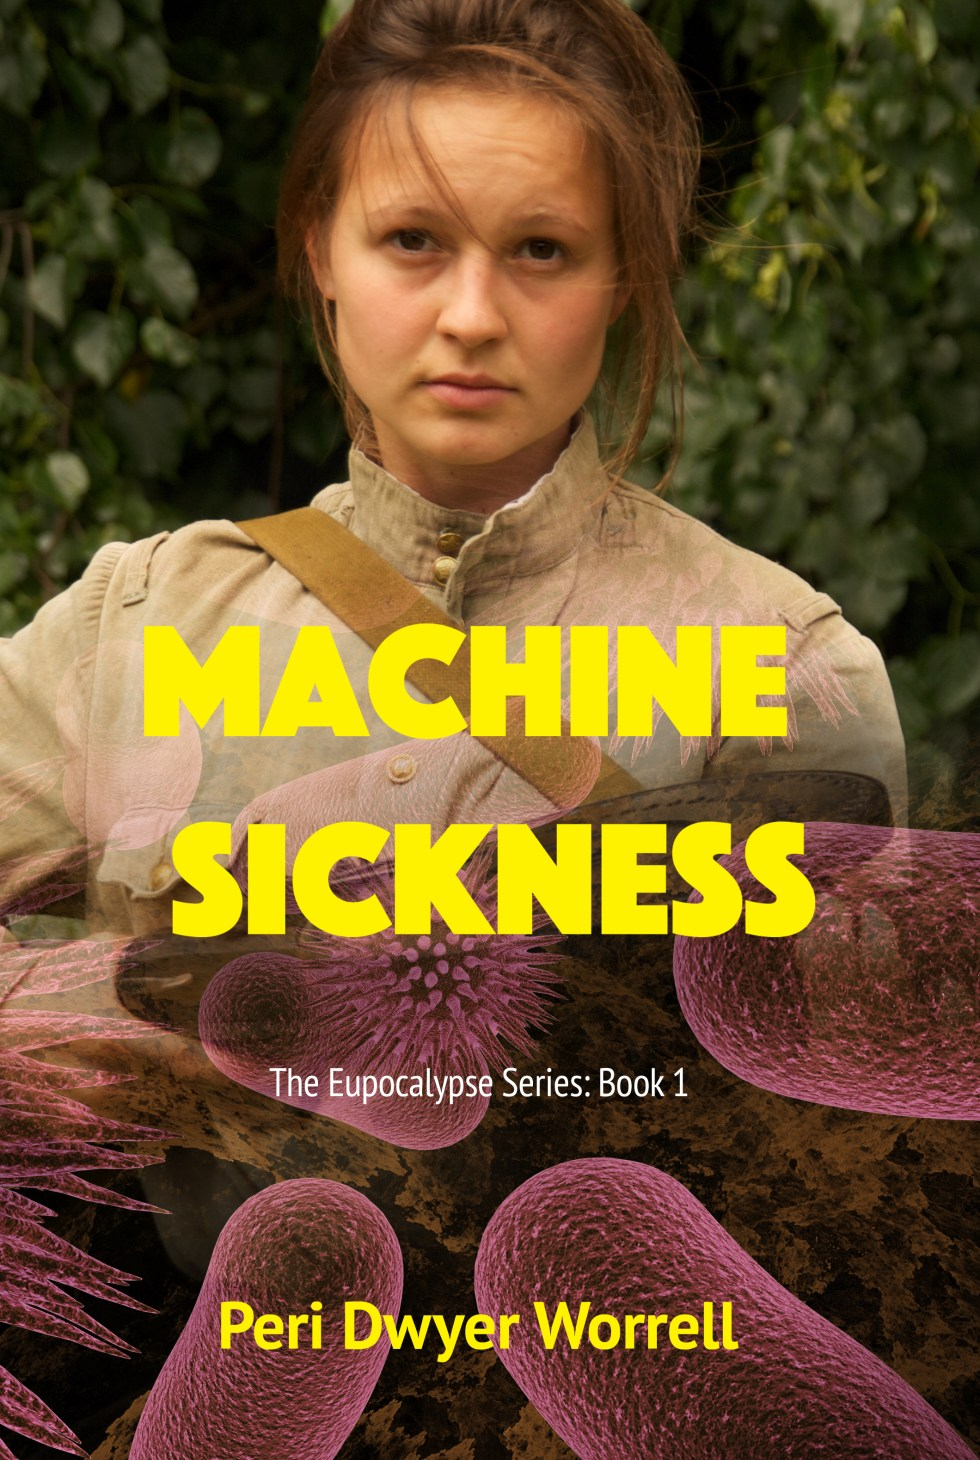 Machine Sickness: The Eupocalypse Series: Book 1